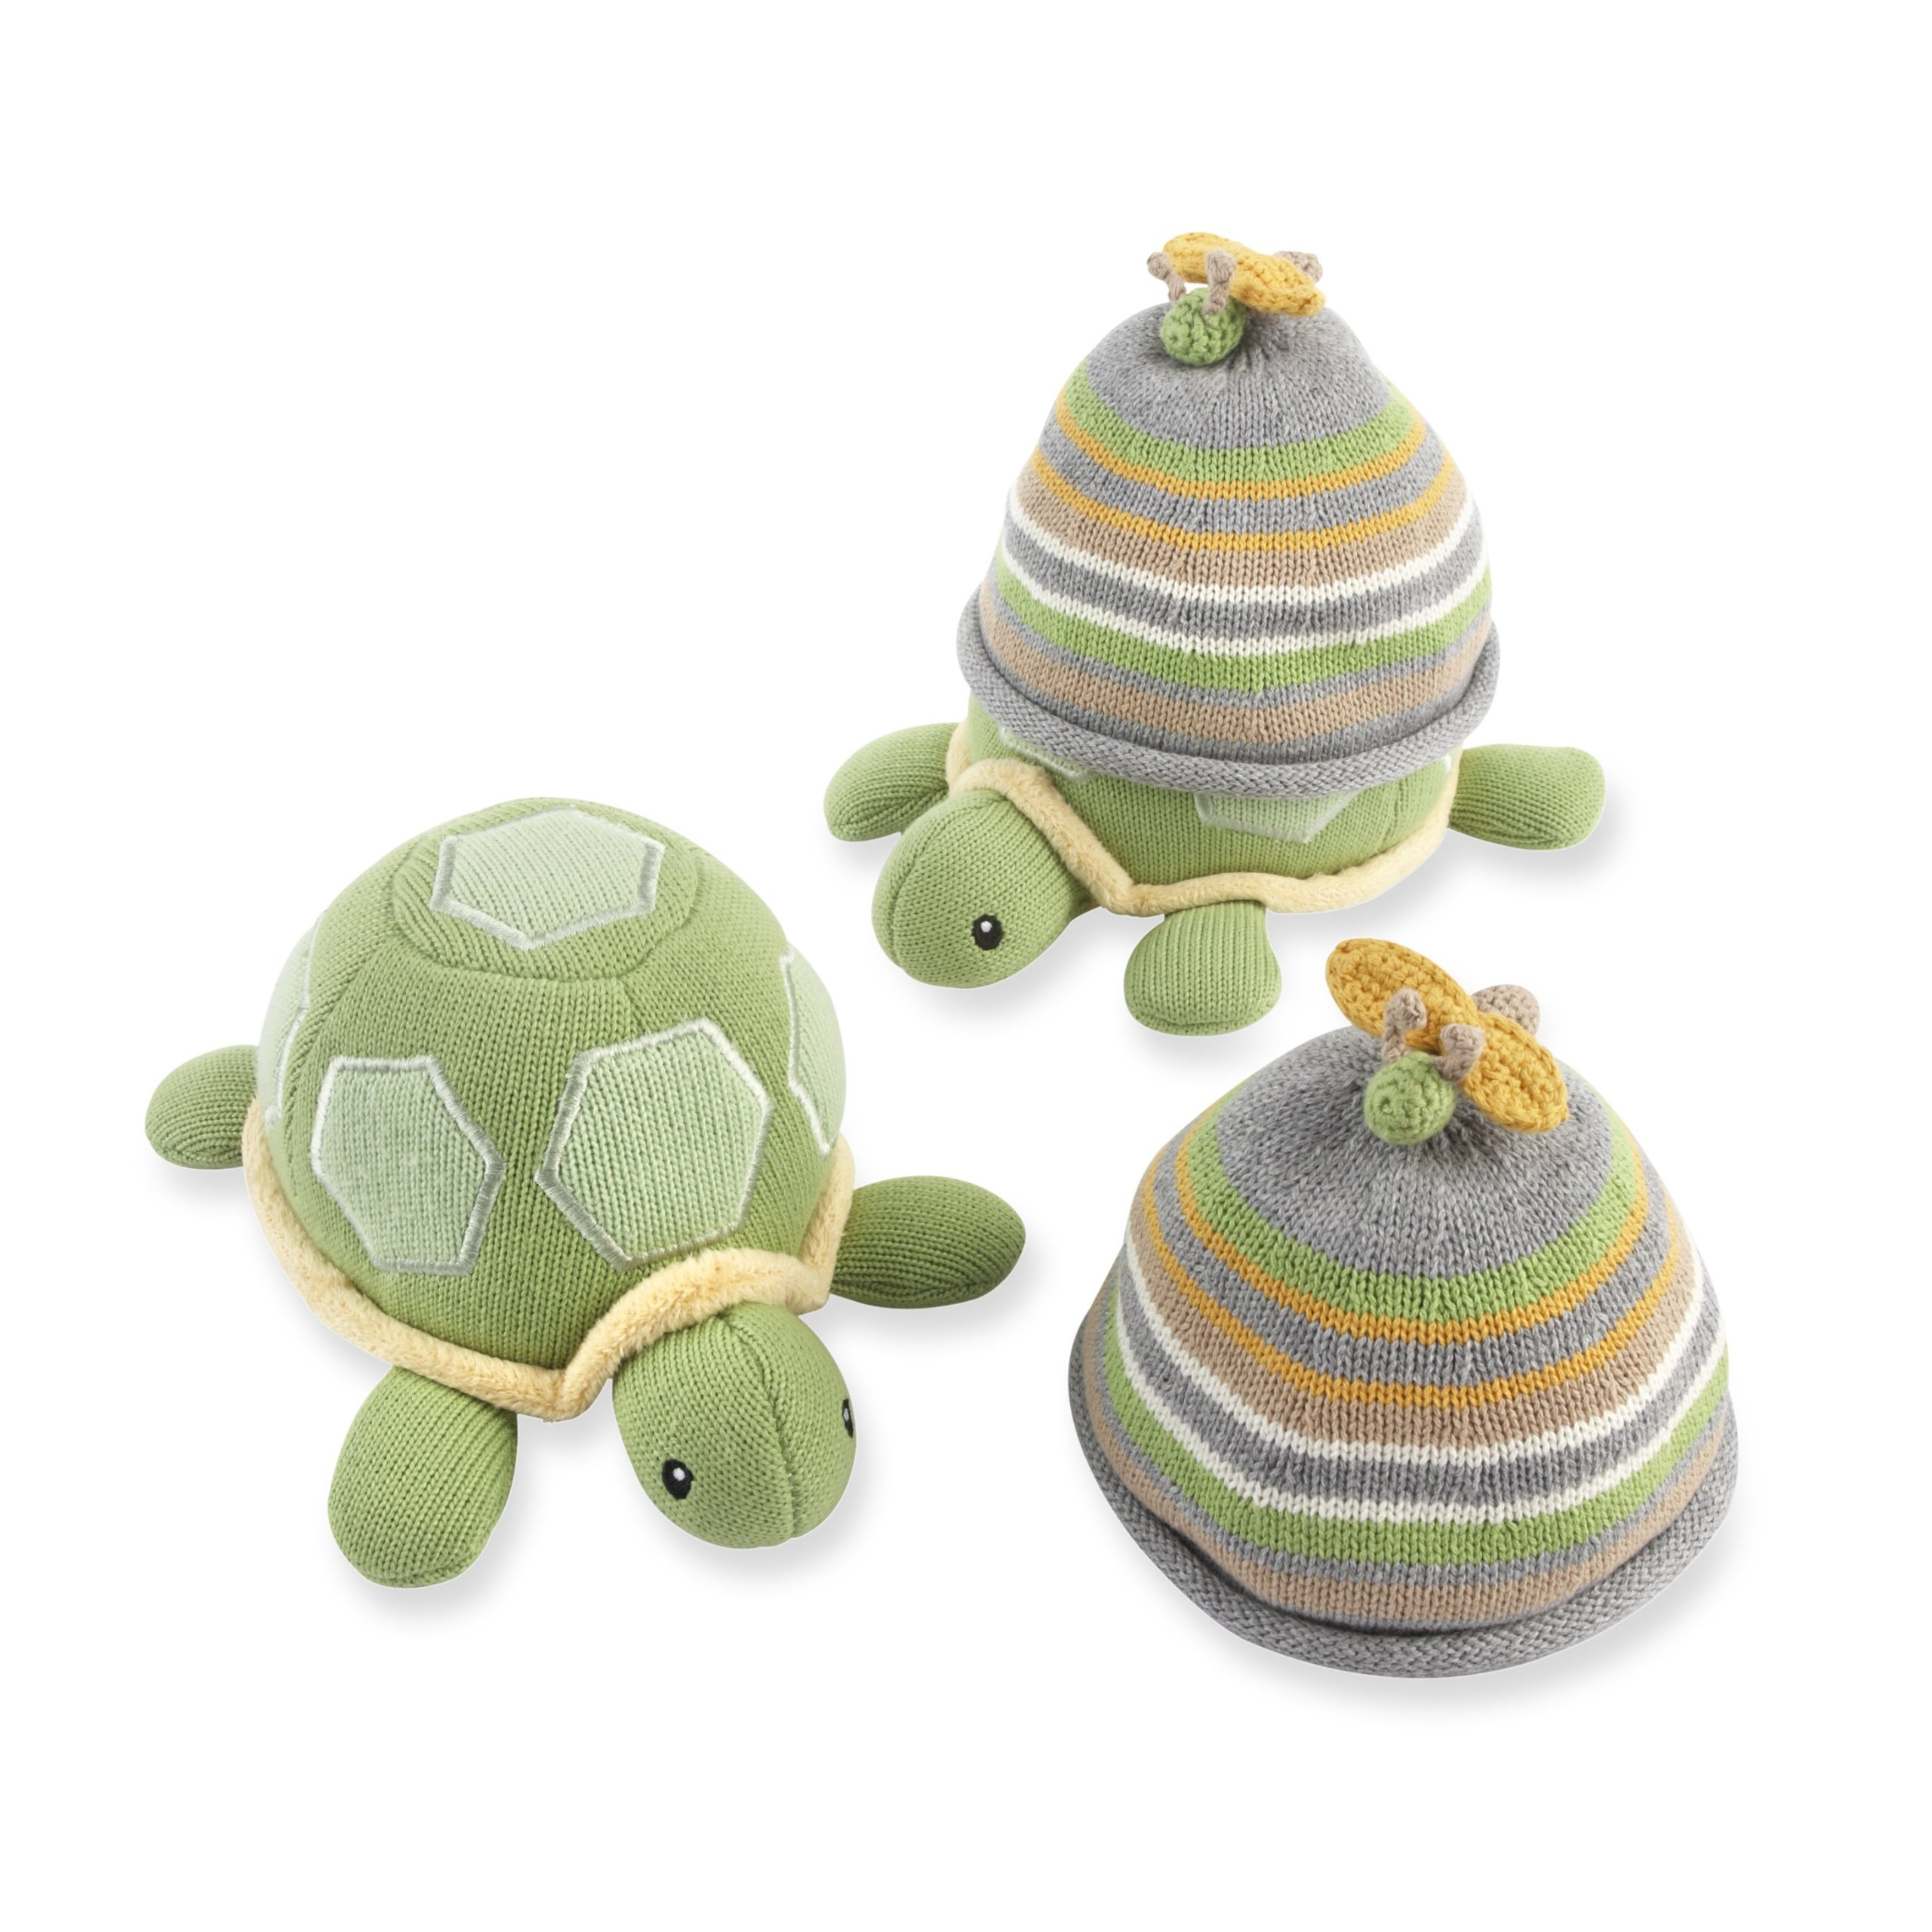 Baby Aspen Turtle Toppers Baby Hat and Turtle Plush Gift Set, Yellow by Baby Aspen (Image #1)